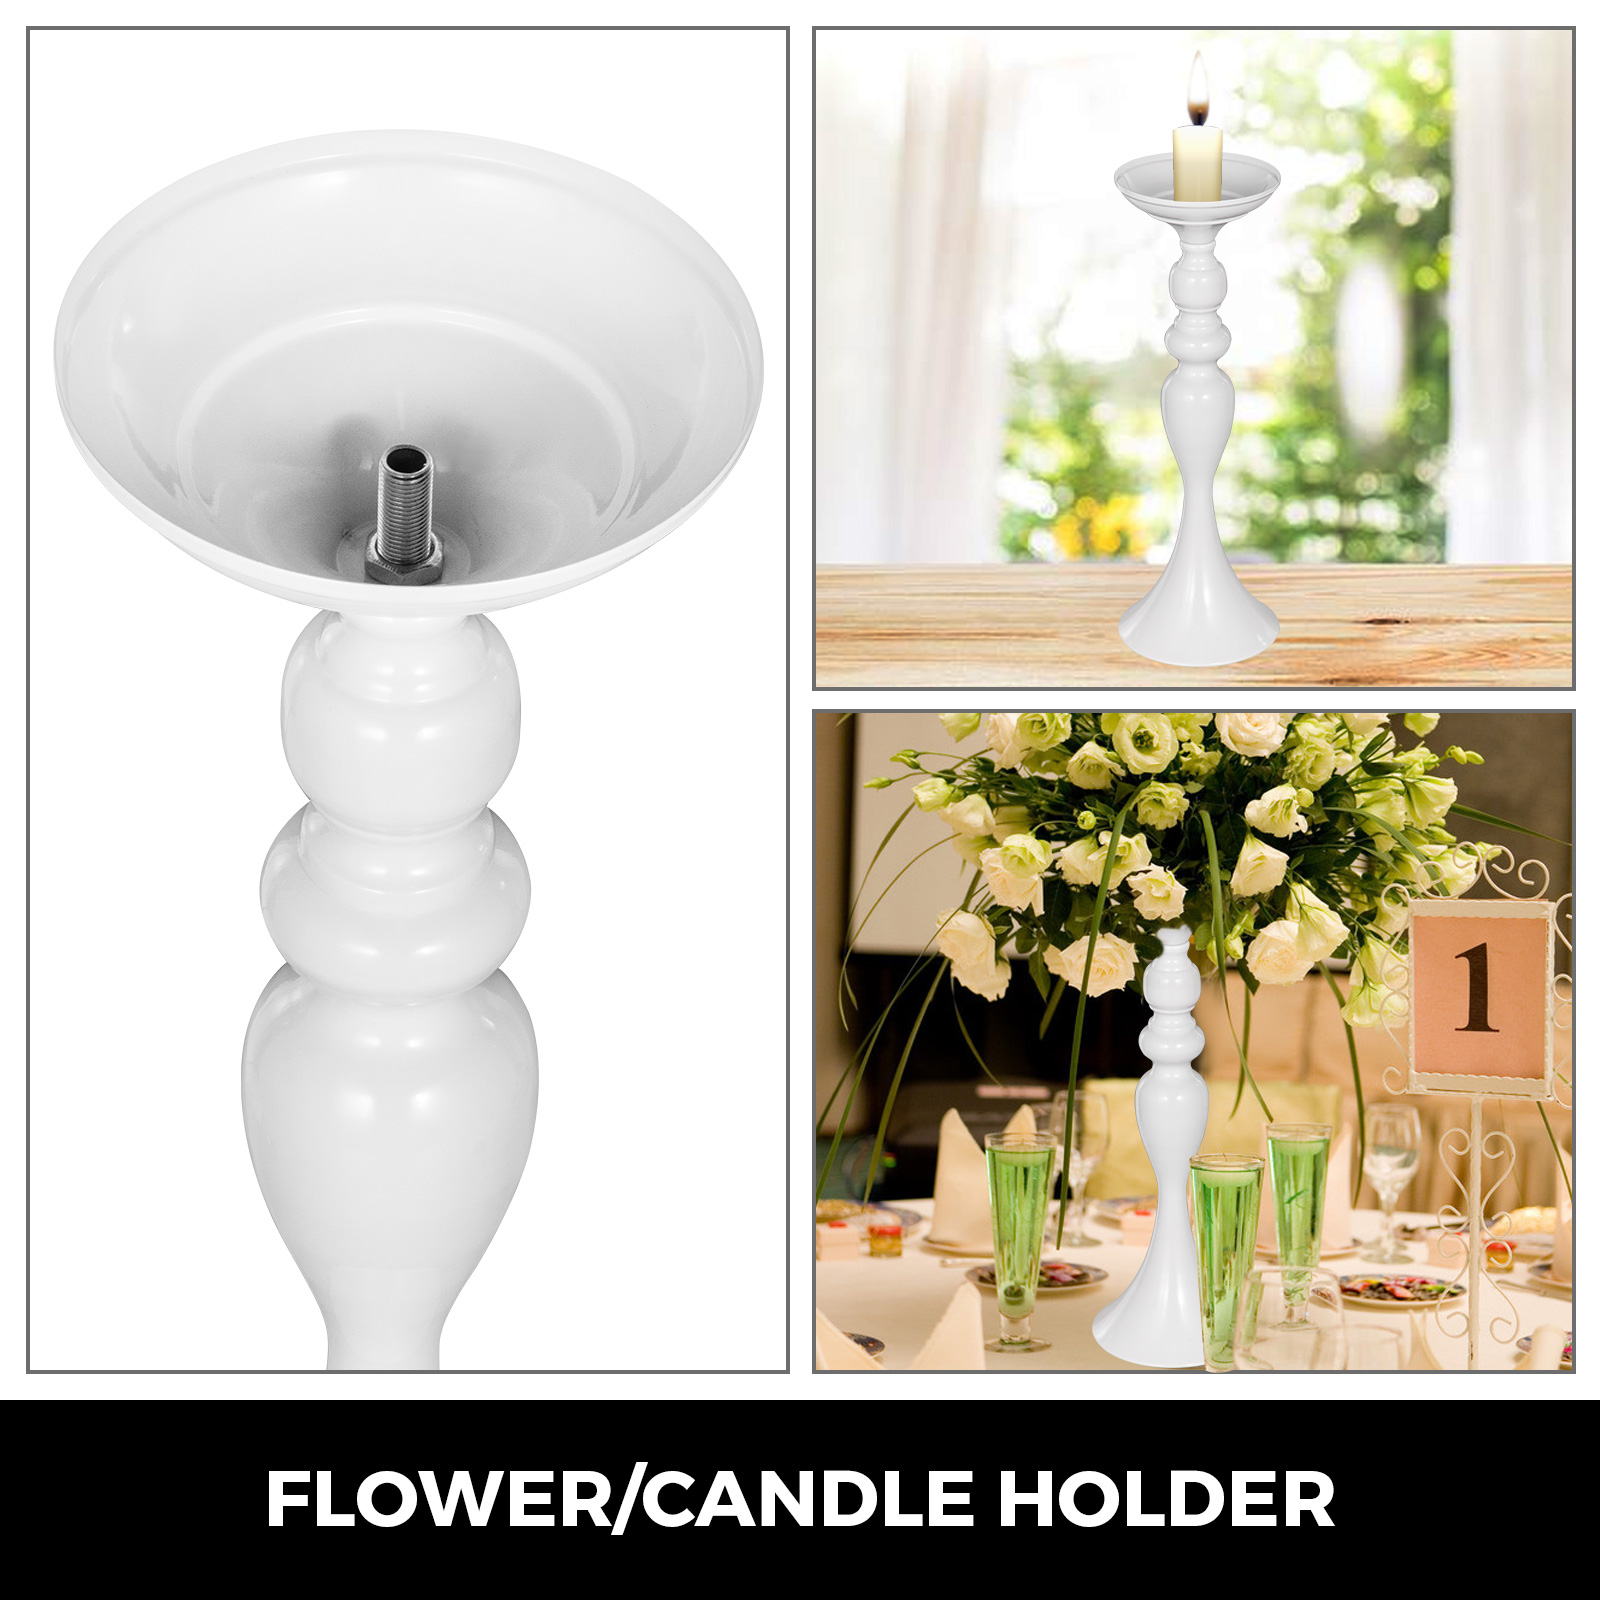 Flower-Rack-for-Wedding-Metal-Candle-Stand-4-11pcs-Centerpiece-Flower-Vase thumbnail 171